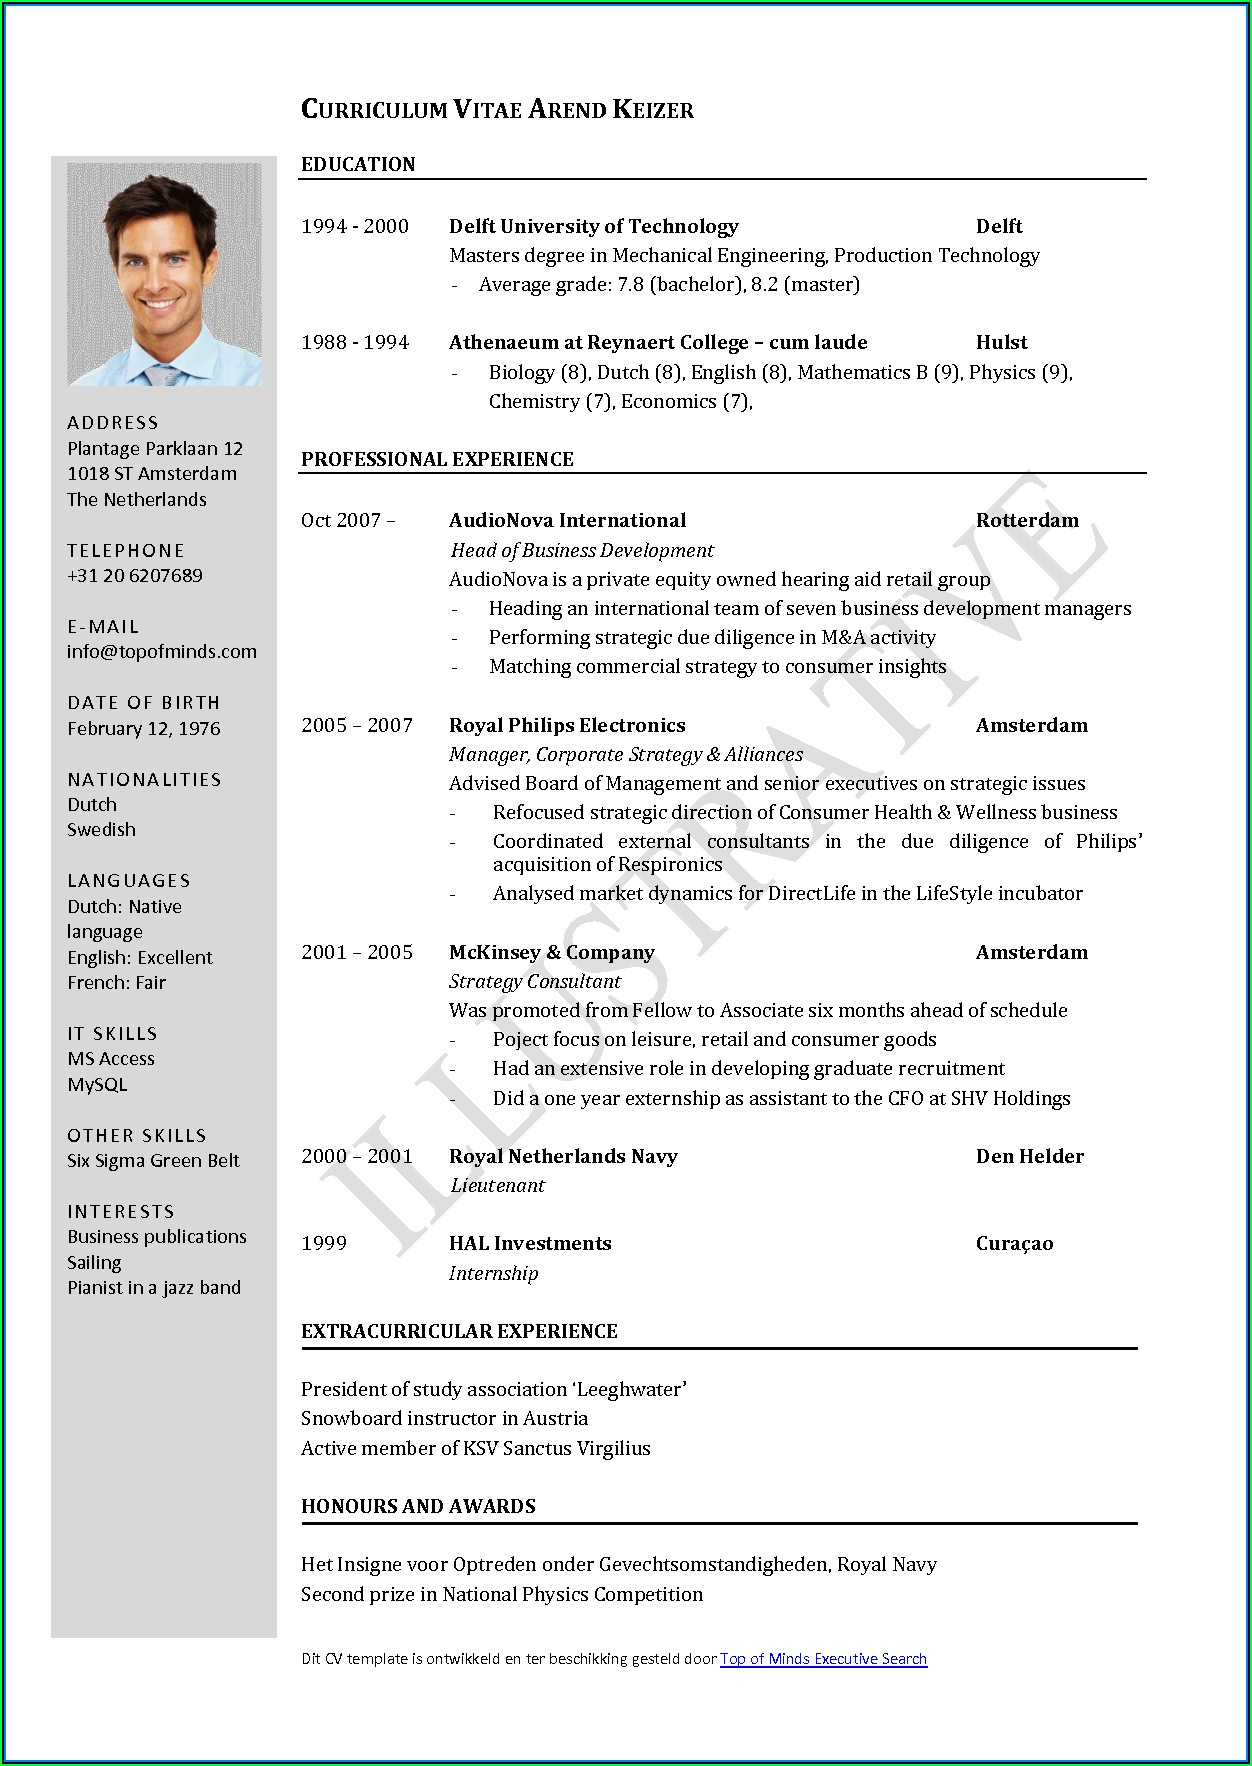 Curriculum Vitae Format Template Download